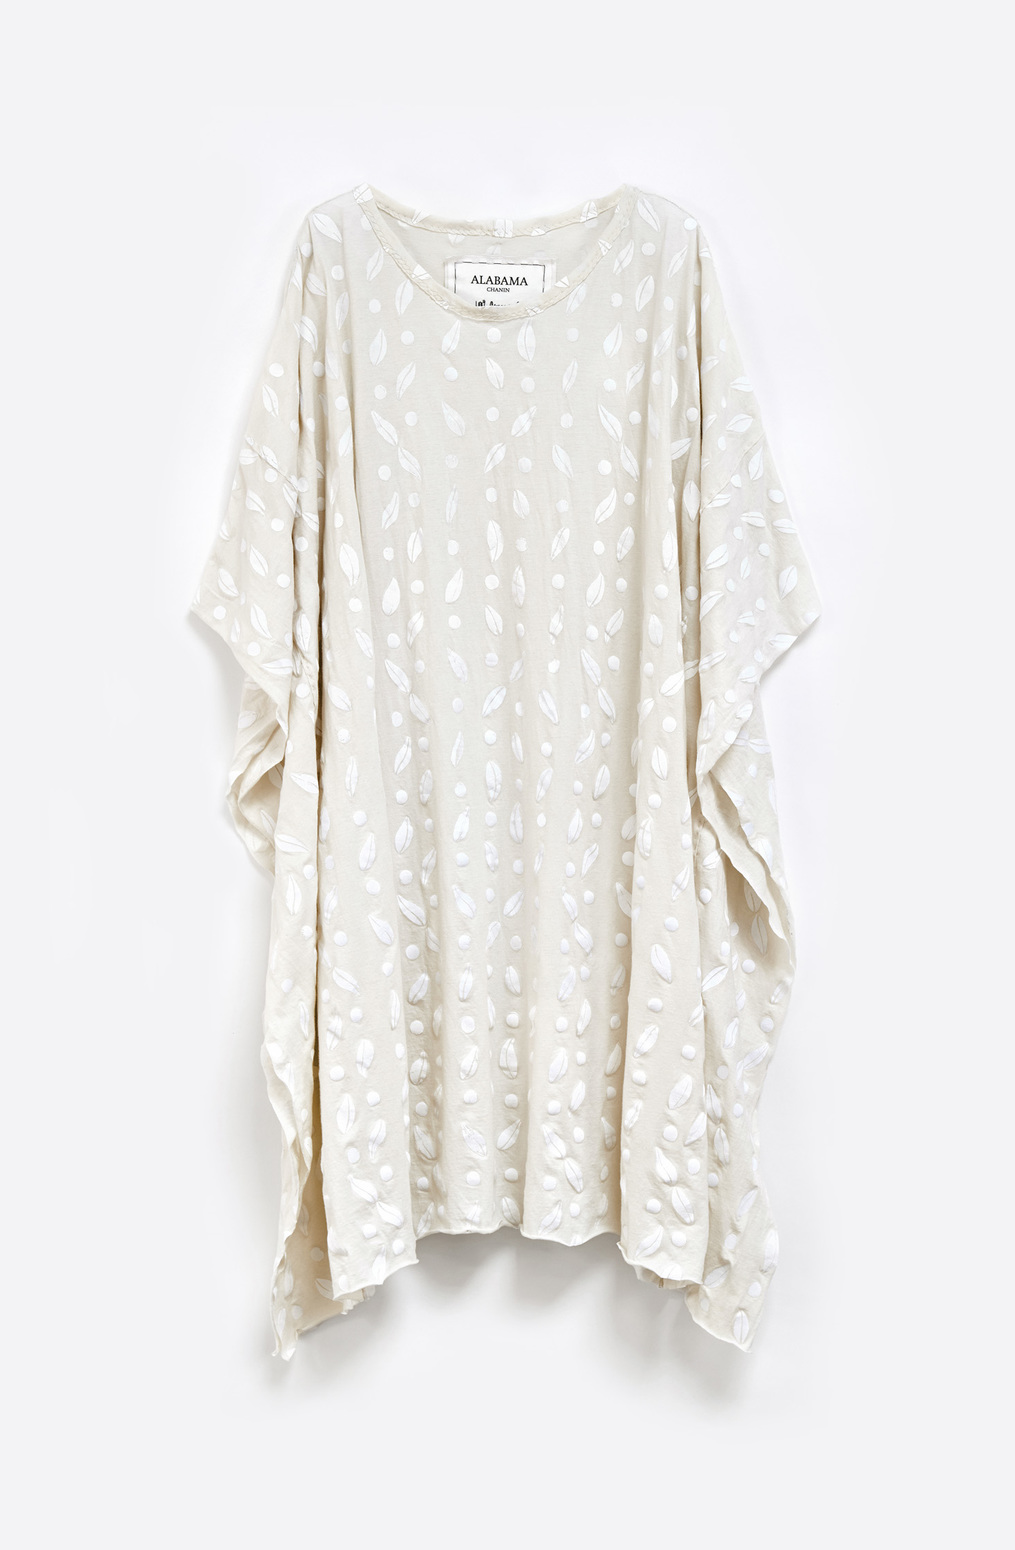 Alabama chanin flowy caftan dress 5